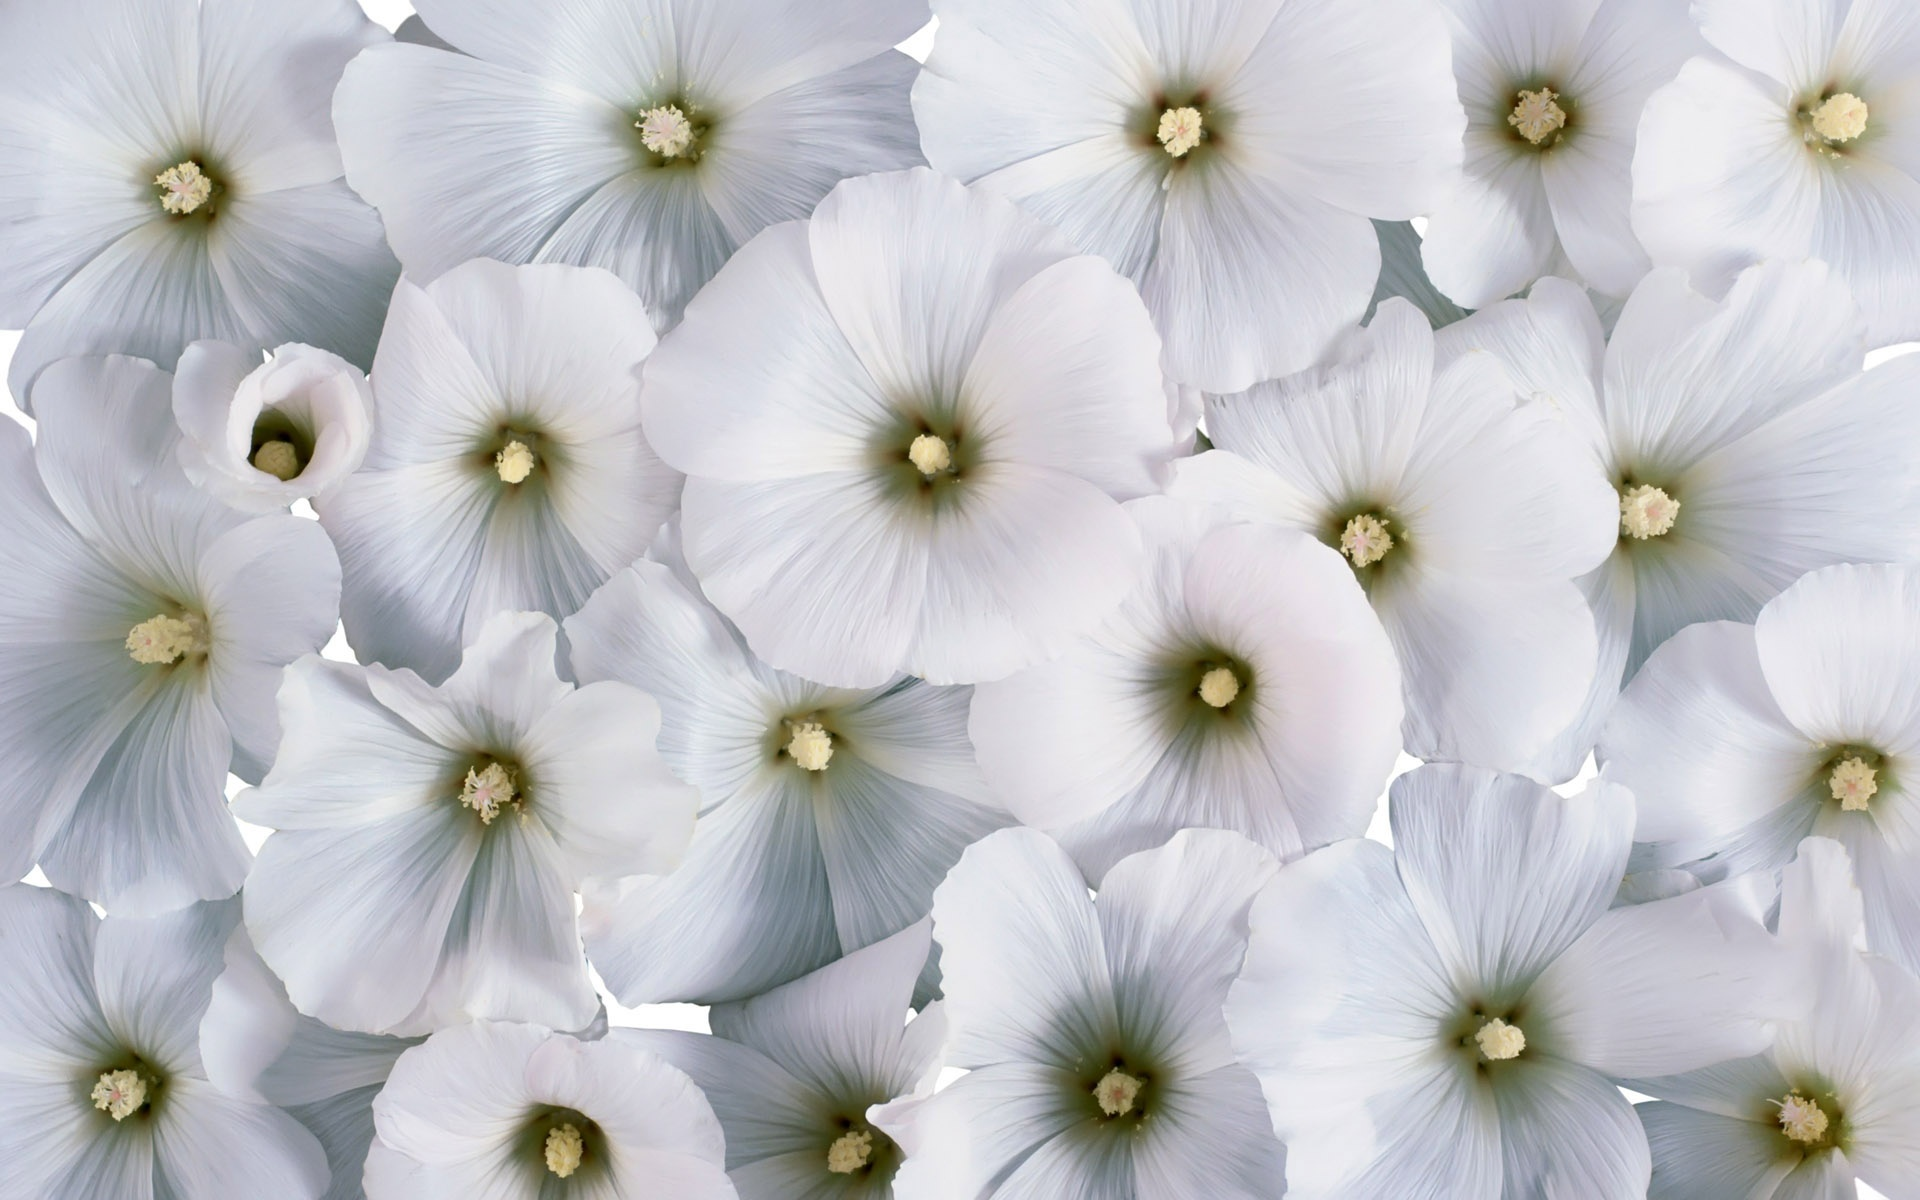 picture of white flower  pivot media, Beautiful flower